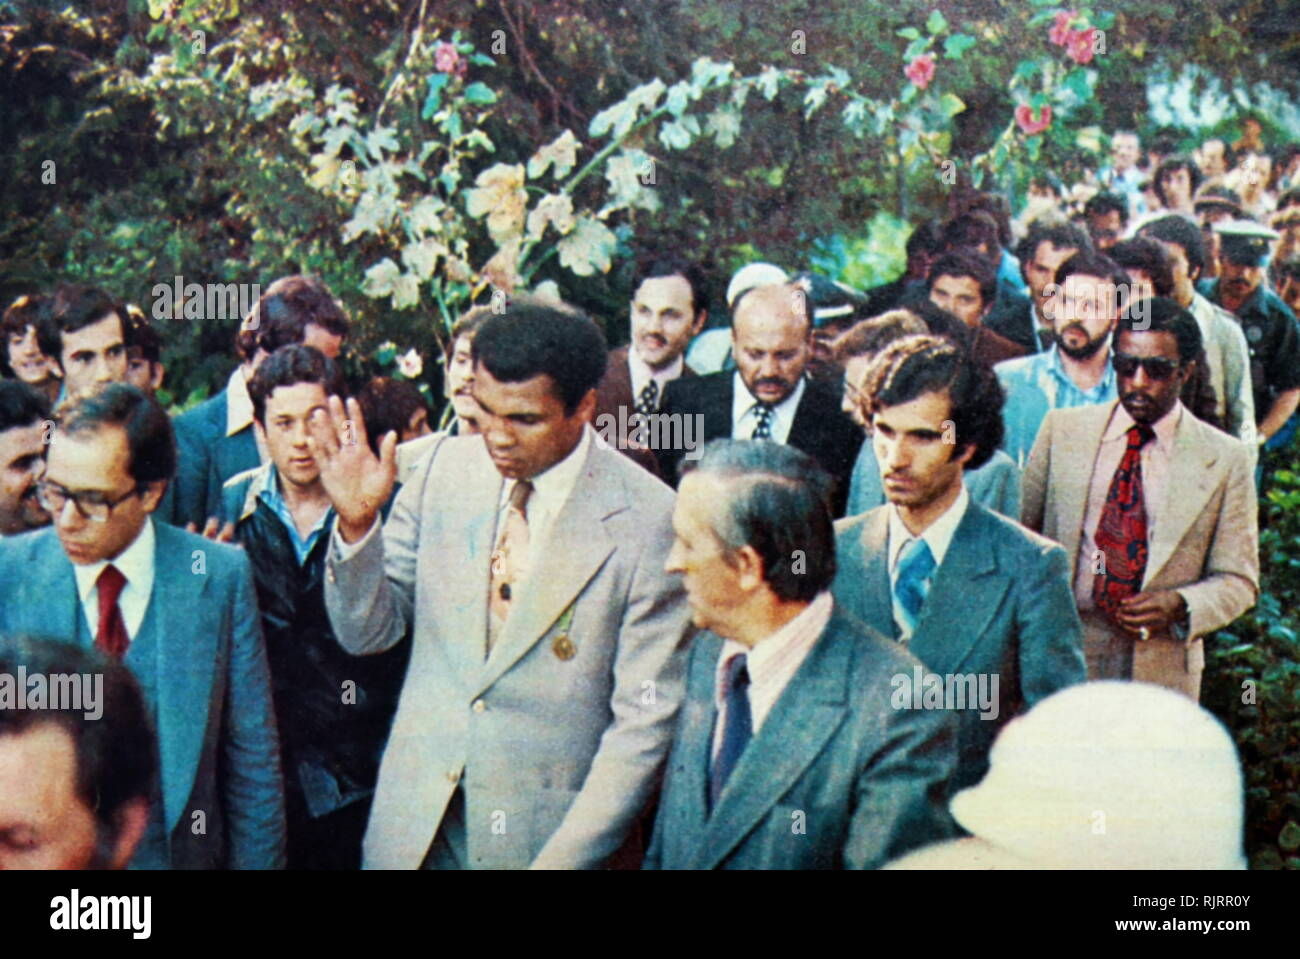 1976, visit to Turkey by Muhammad Ali,(1942 - 2016). Ali was an American professional boxer and activist; He is widely regarded as one of the most significant and celebrated sports figures of the 20th century. - Stock Image